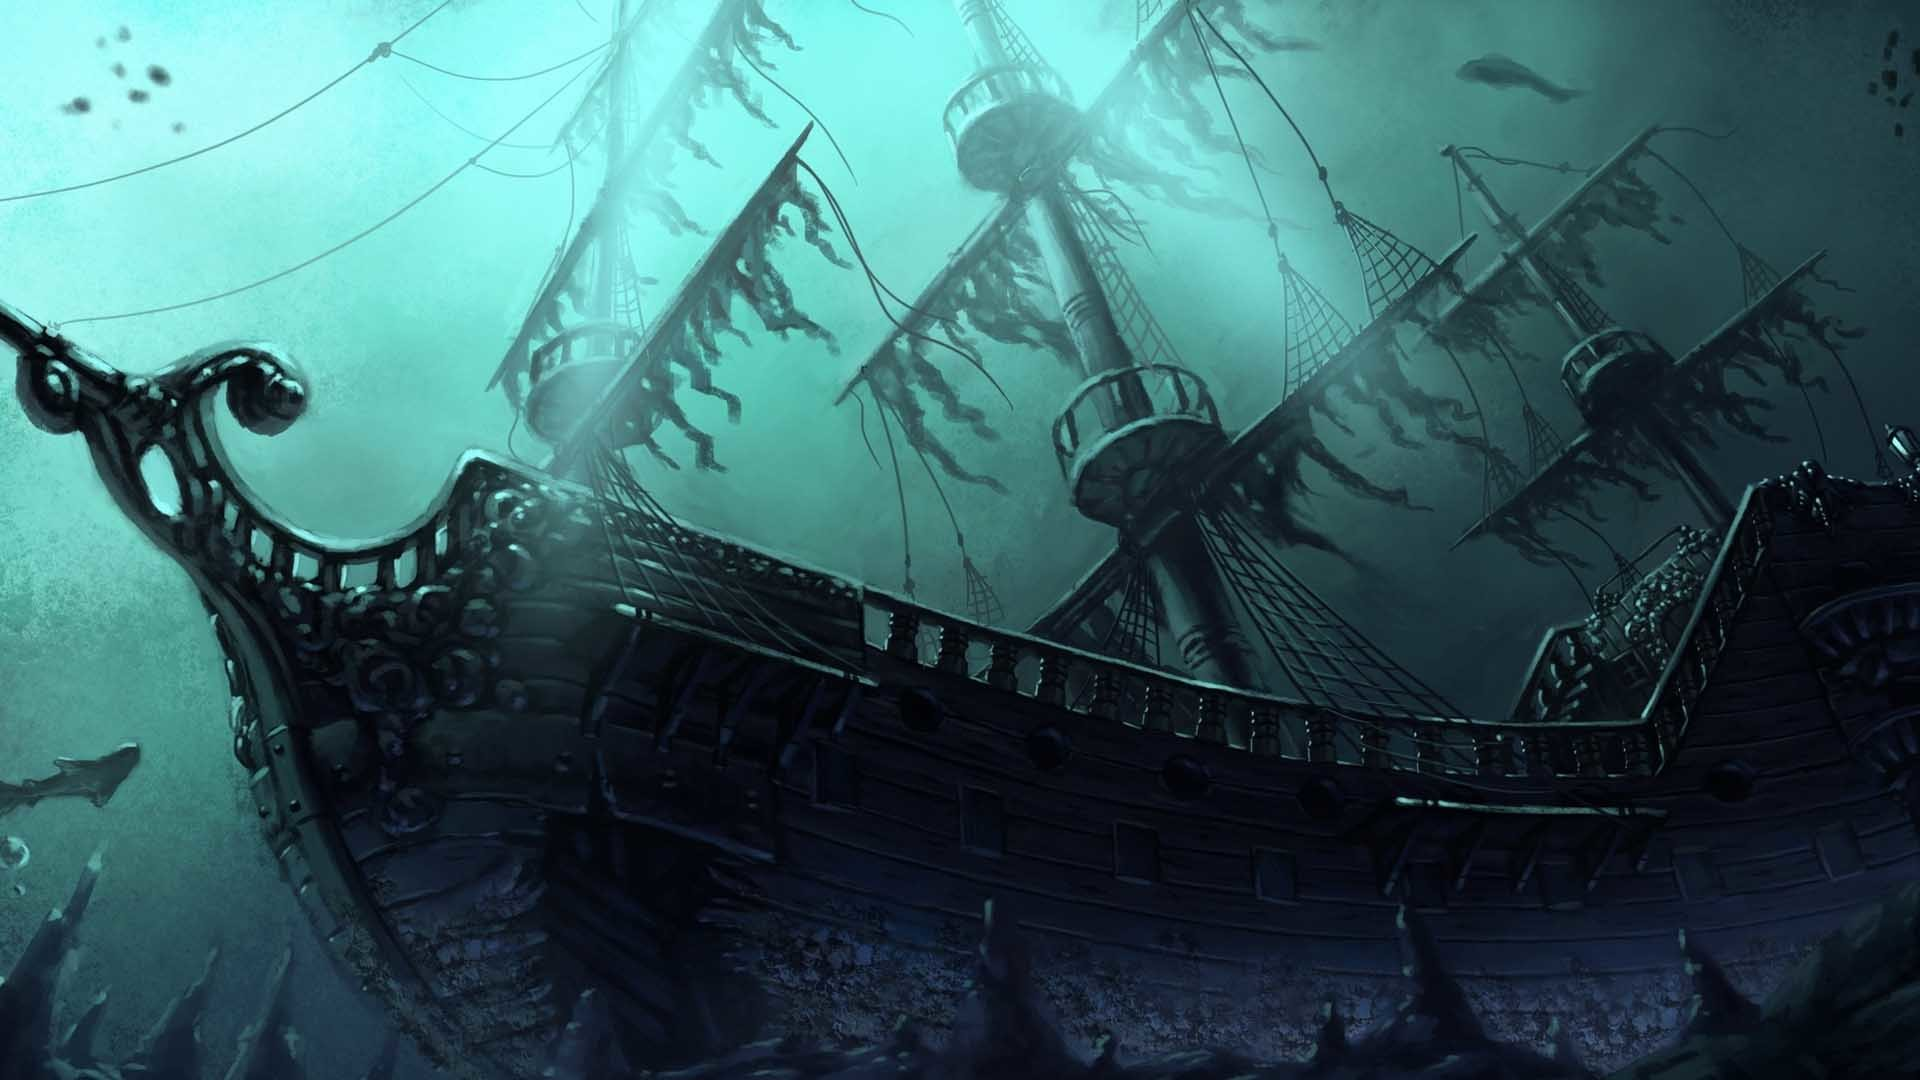 pirate ship wallpaper 82 images